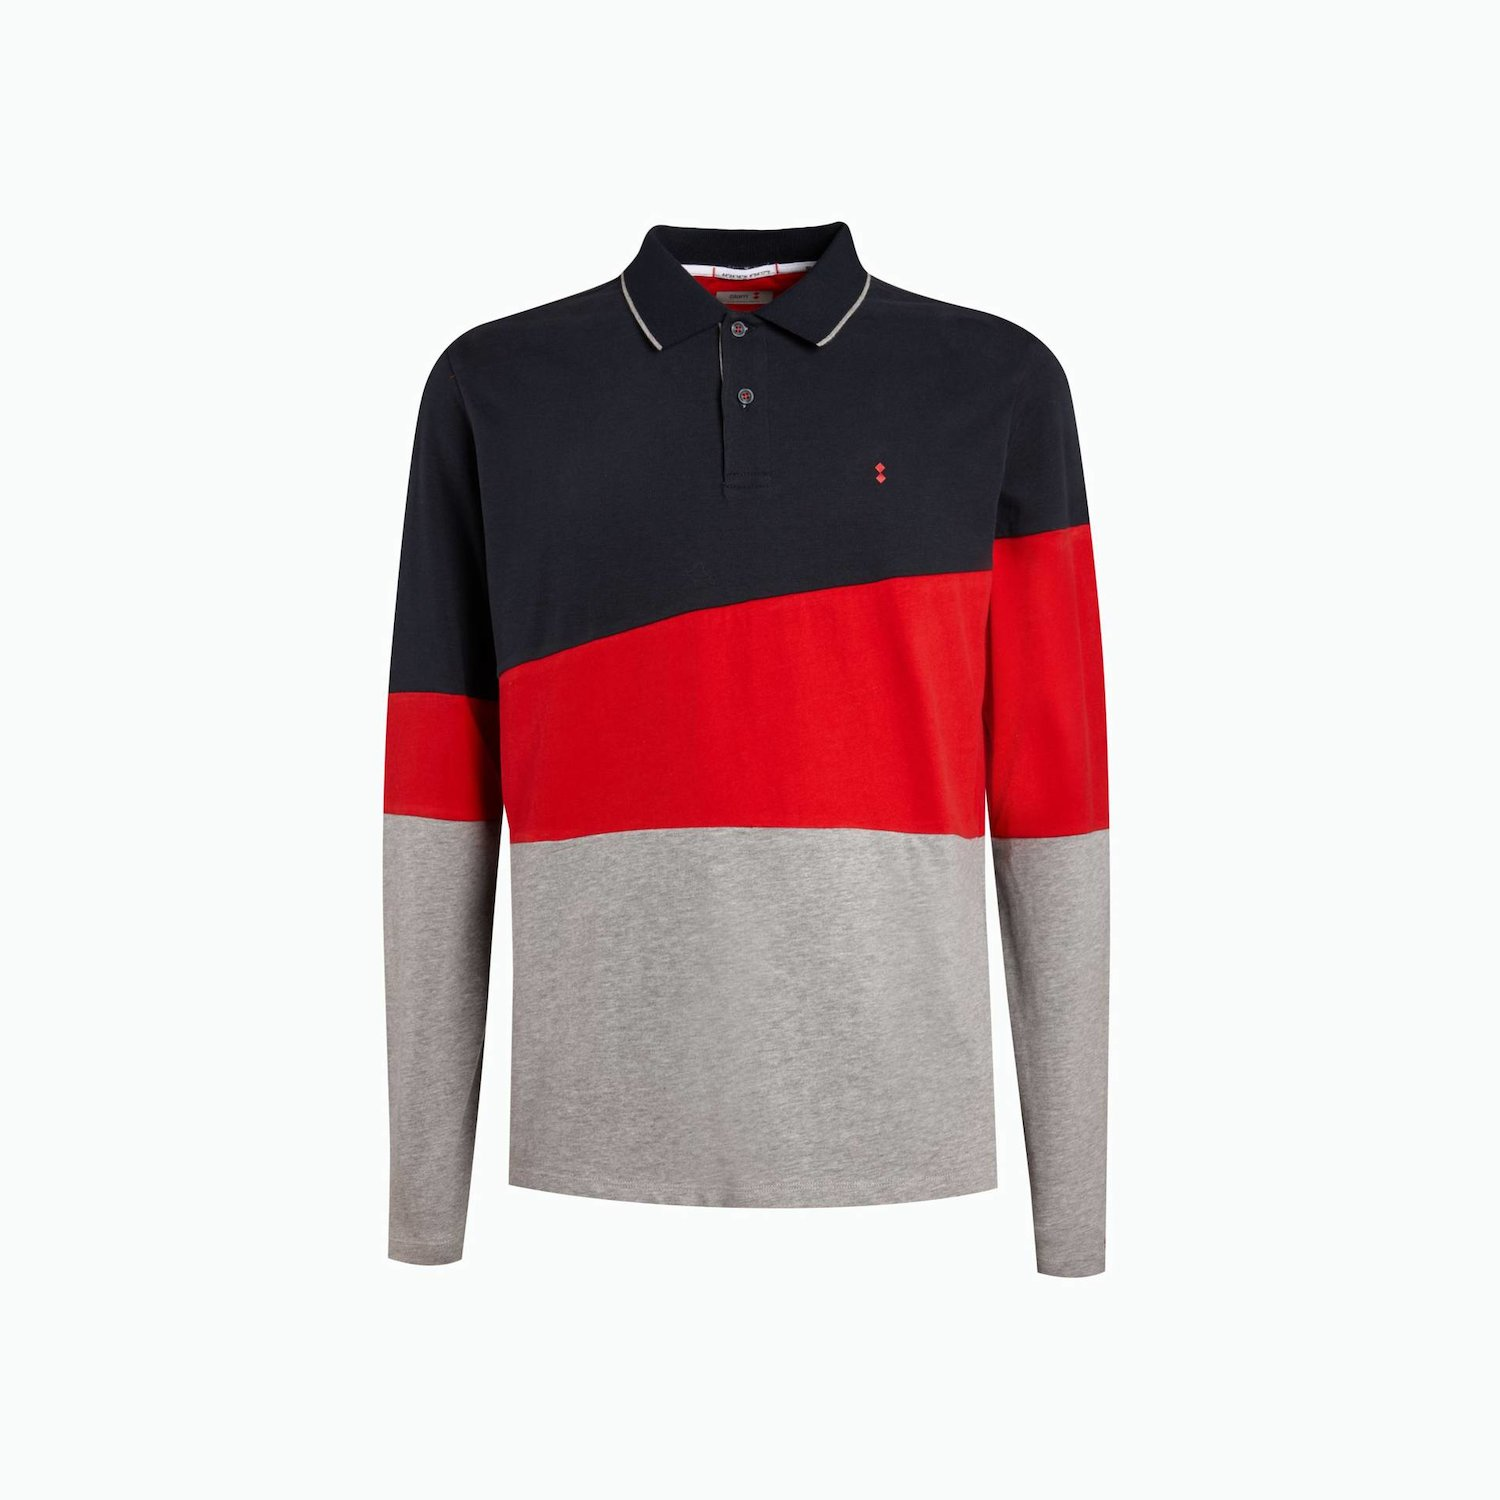 Polo B42 - Navy Blau / Slam Red / Grau, Meliert